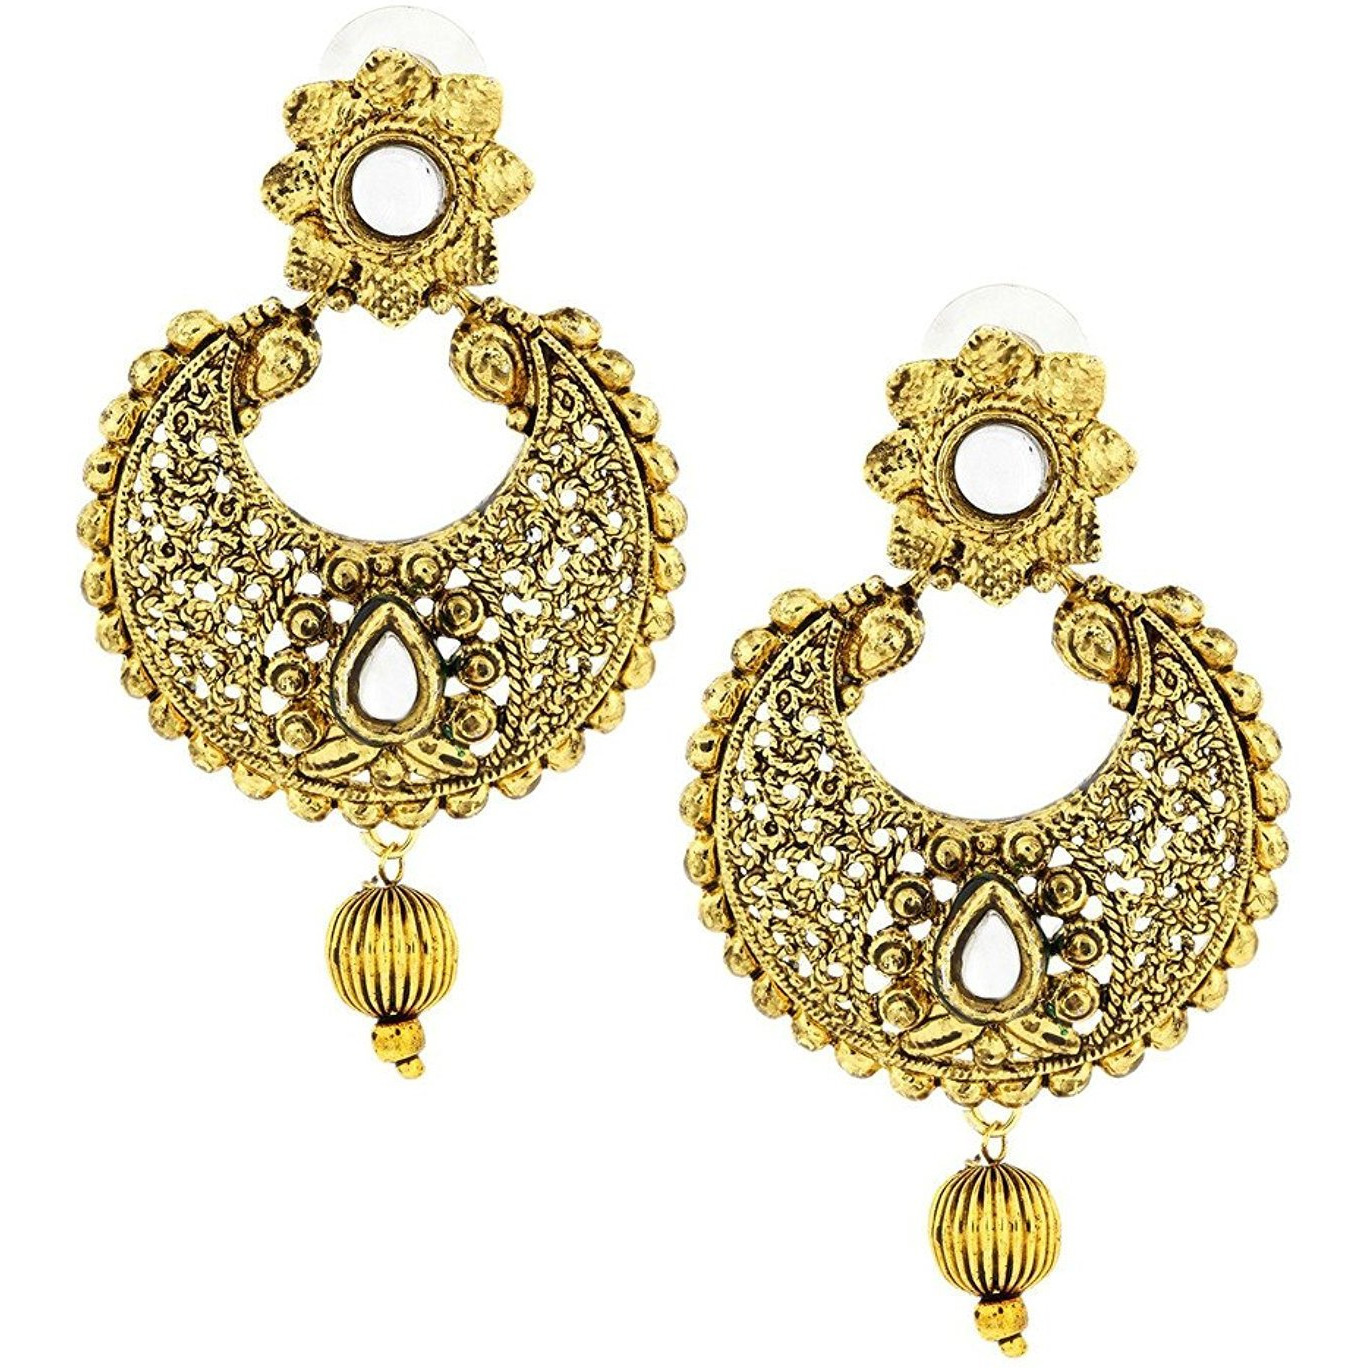 Zivom Kundan Filigree Antique 22K Gold Plated Chand Bali Earring For Women